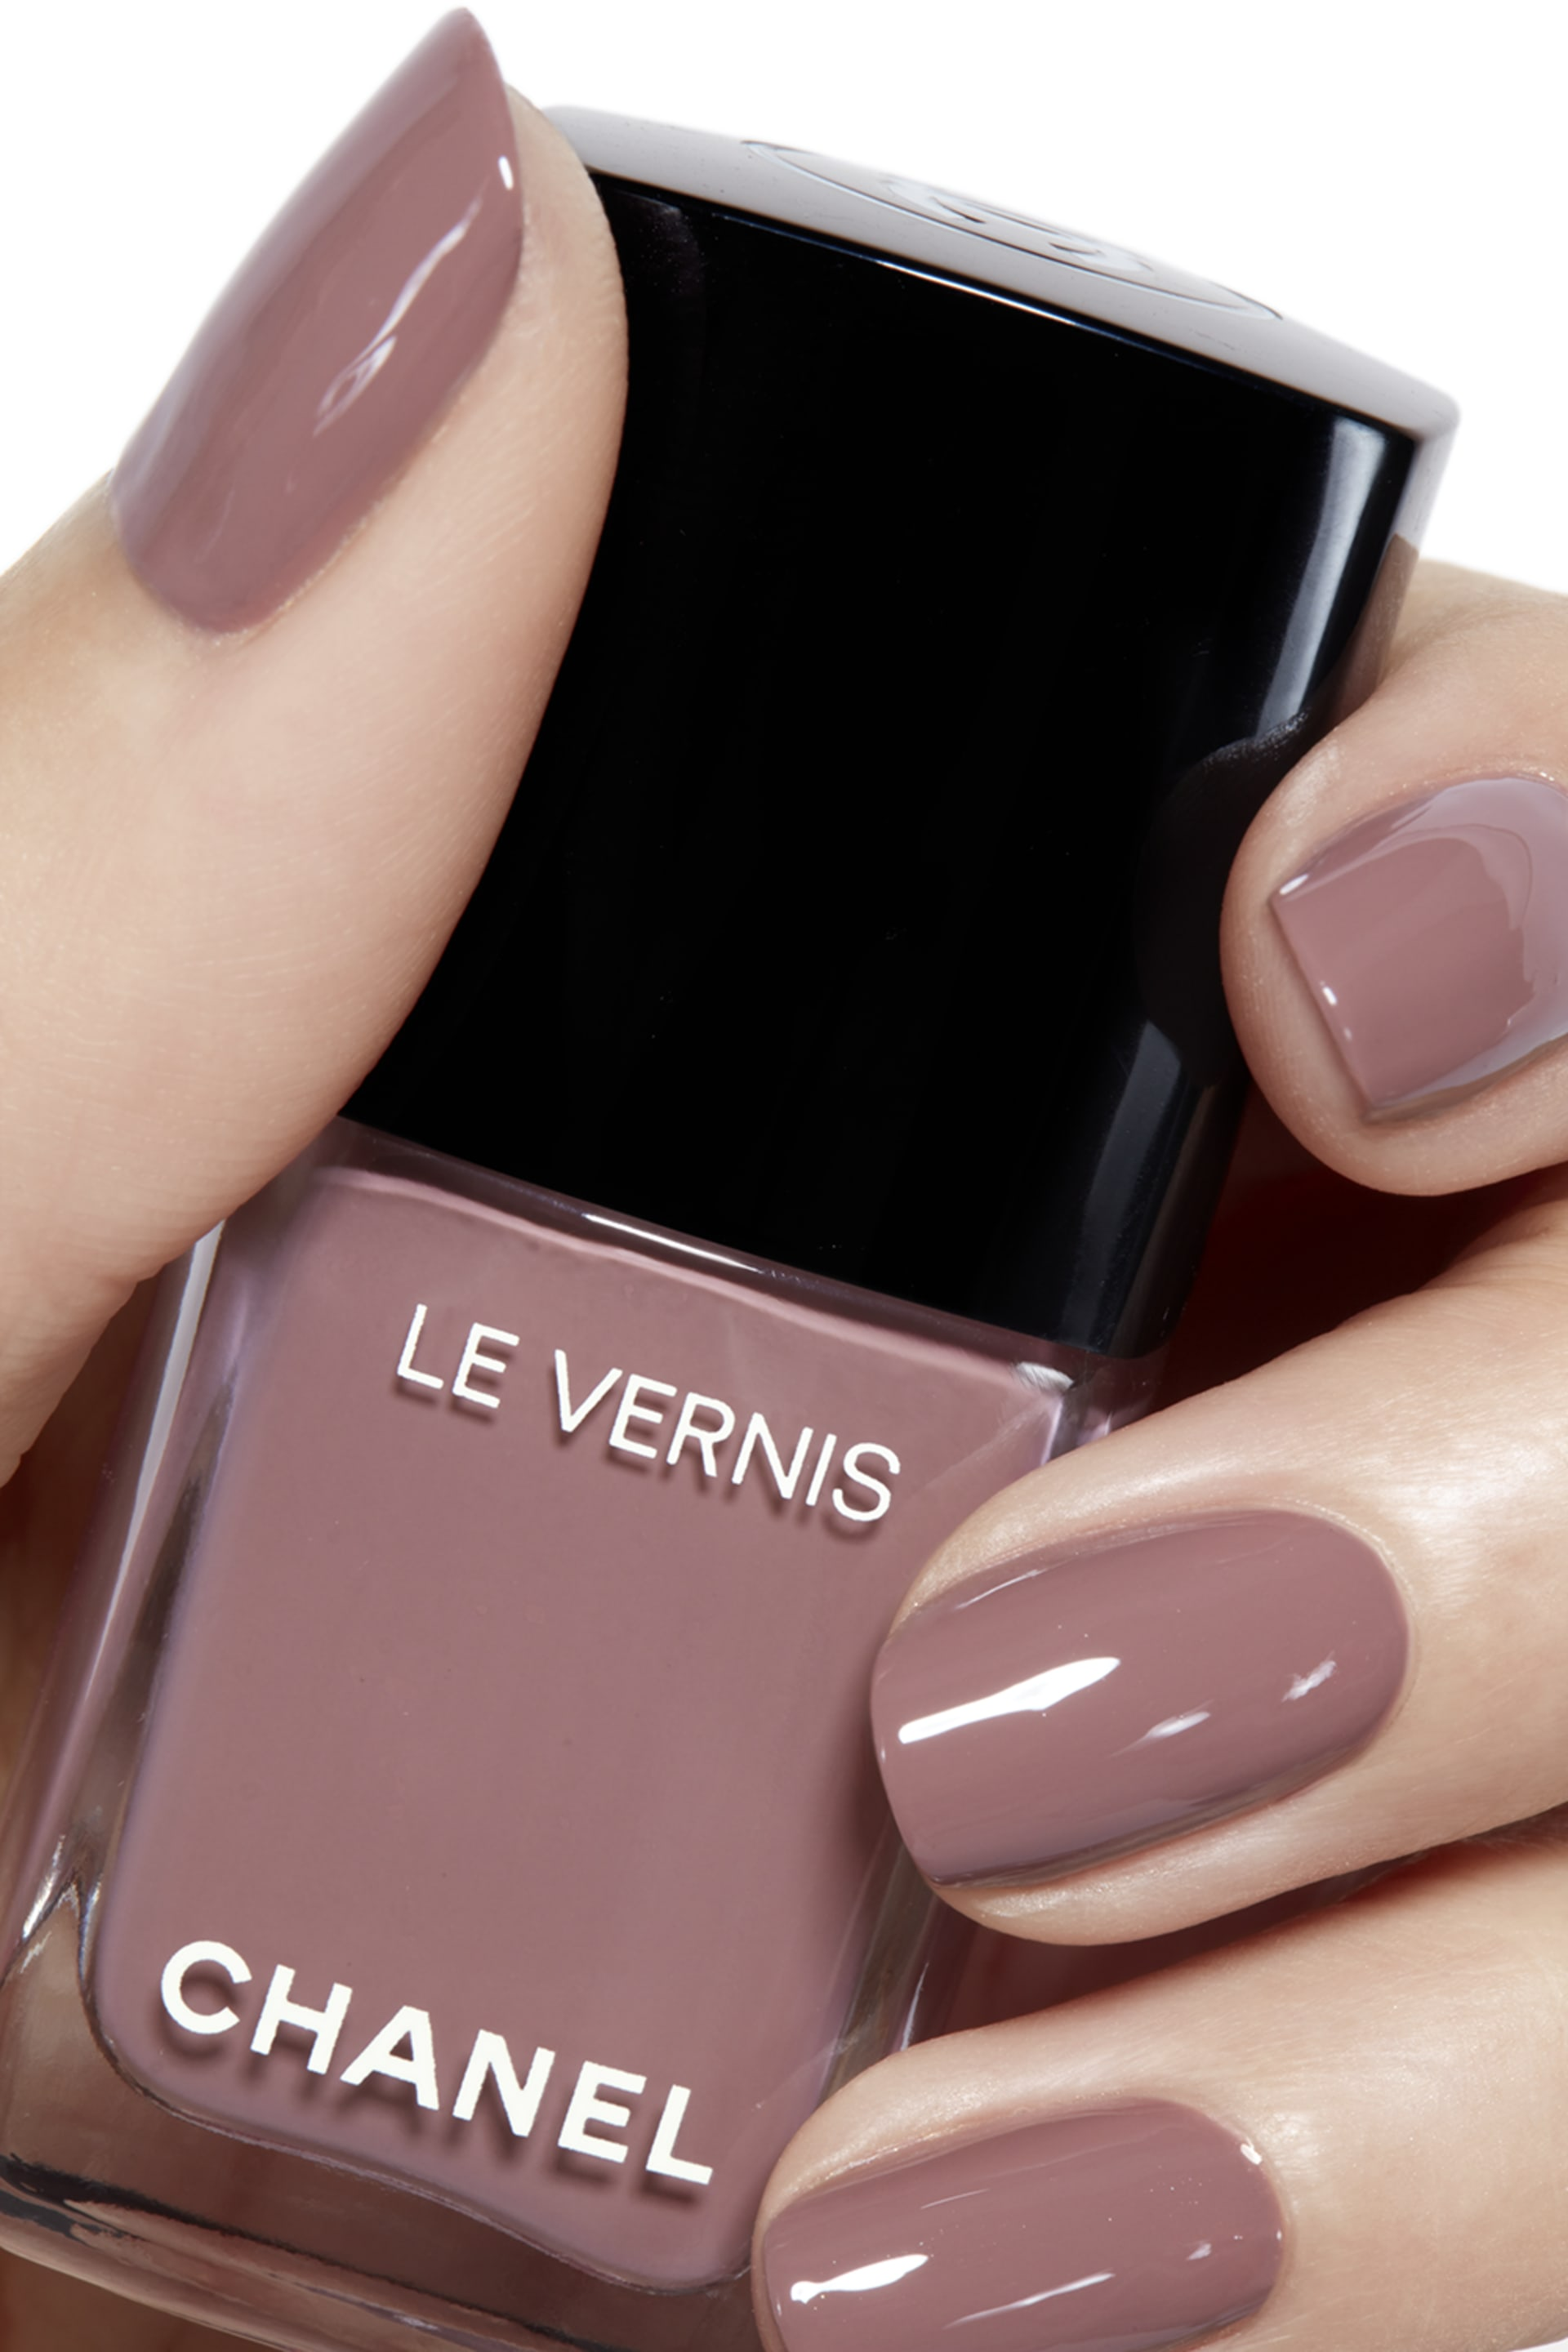 Application makeup visual 2 - LE VERNIS 612 - CHICNESS